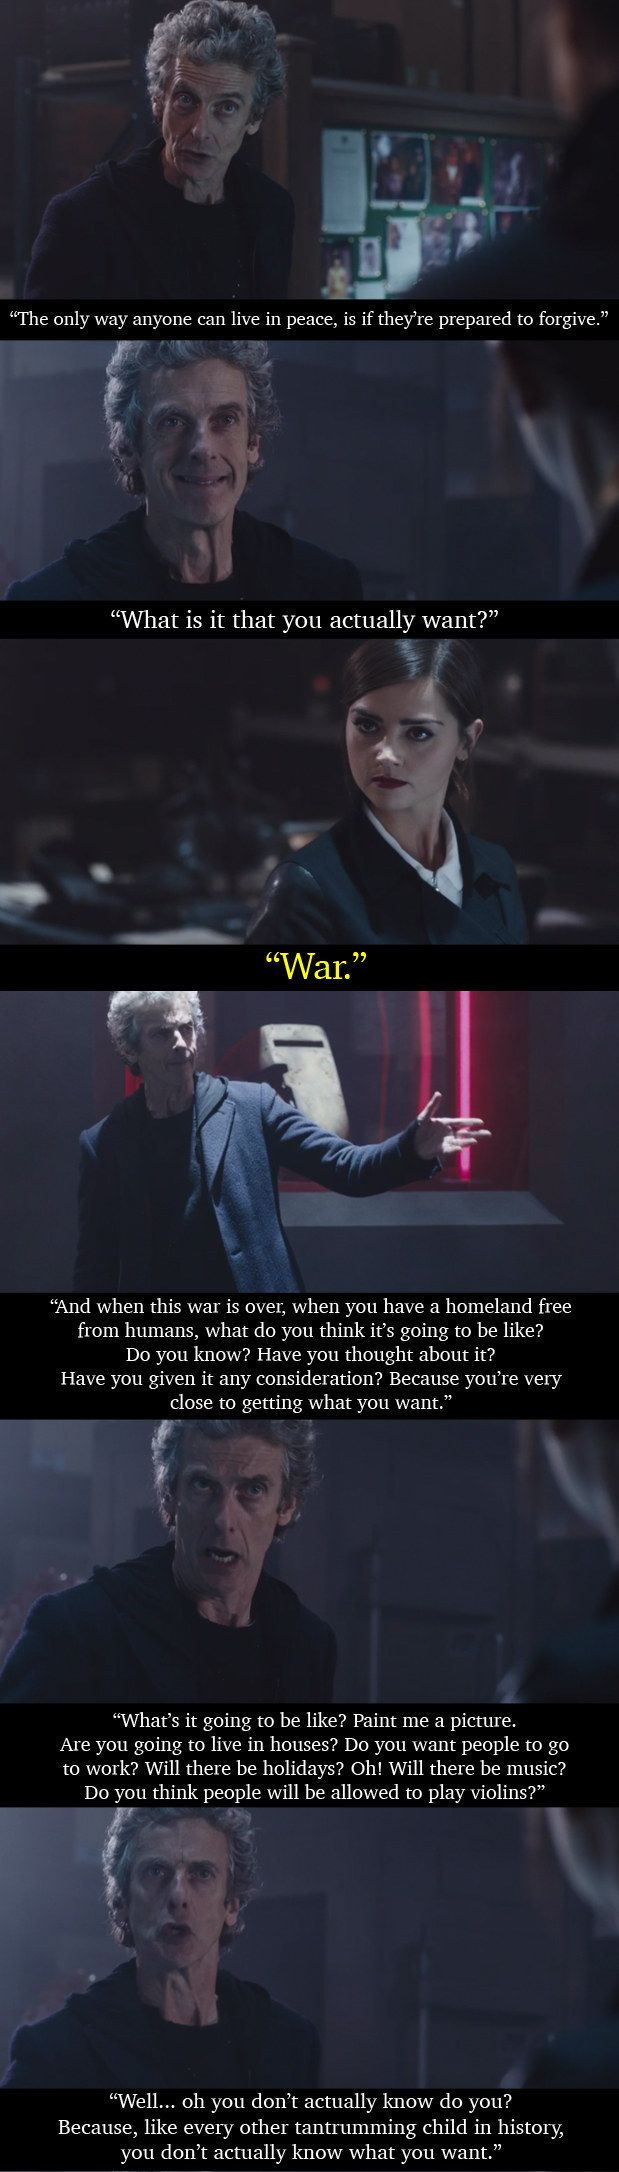 """In the latest episode of Doctor Who, the Doctor was faced with a breakdown in the ceasefire between humans and the extremist faction of an alien race that has been living secretly on Earth. He then came out with a speech that sums up all wars. 